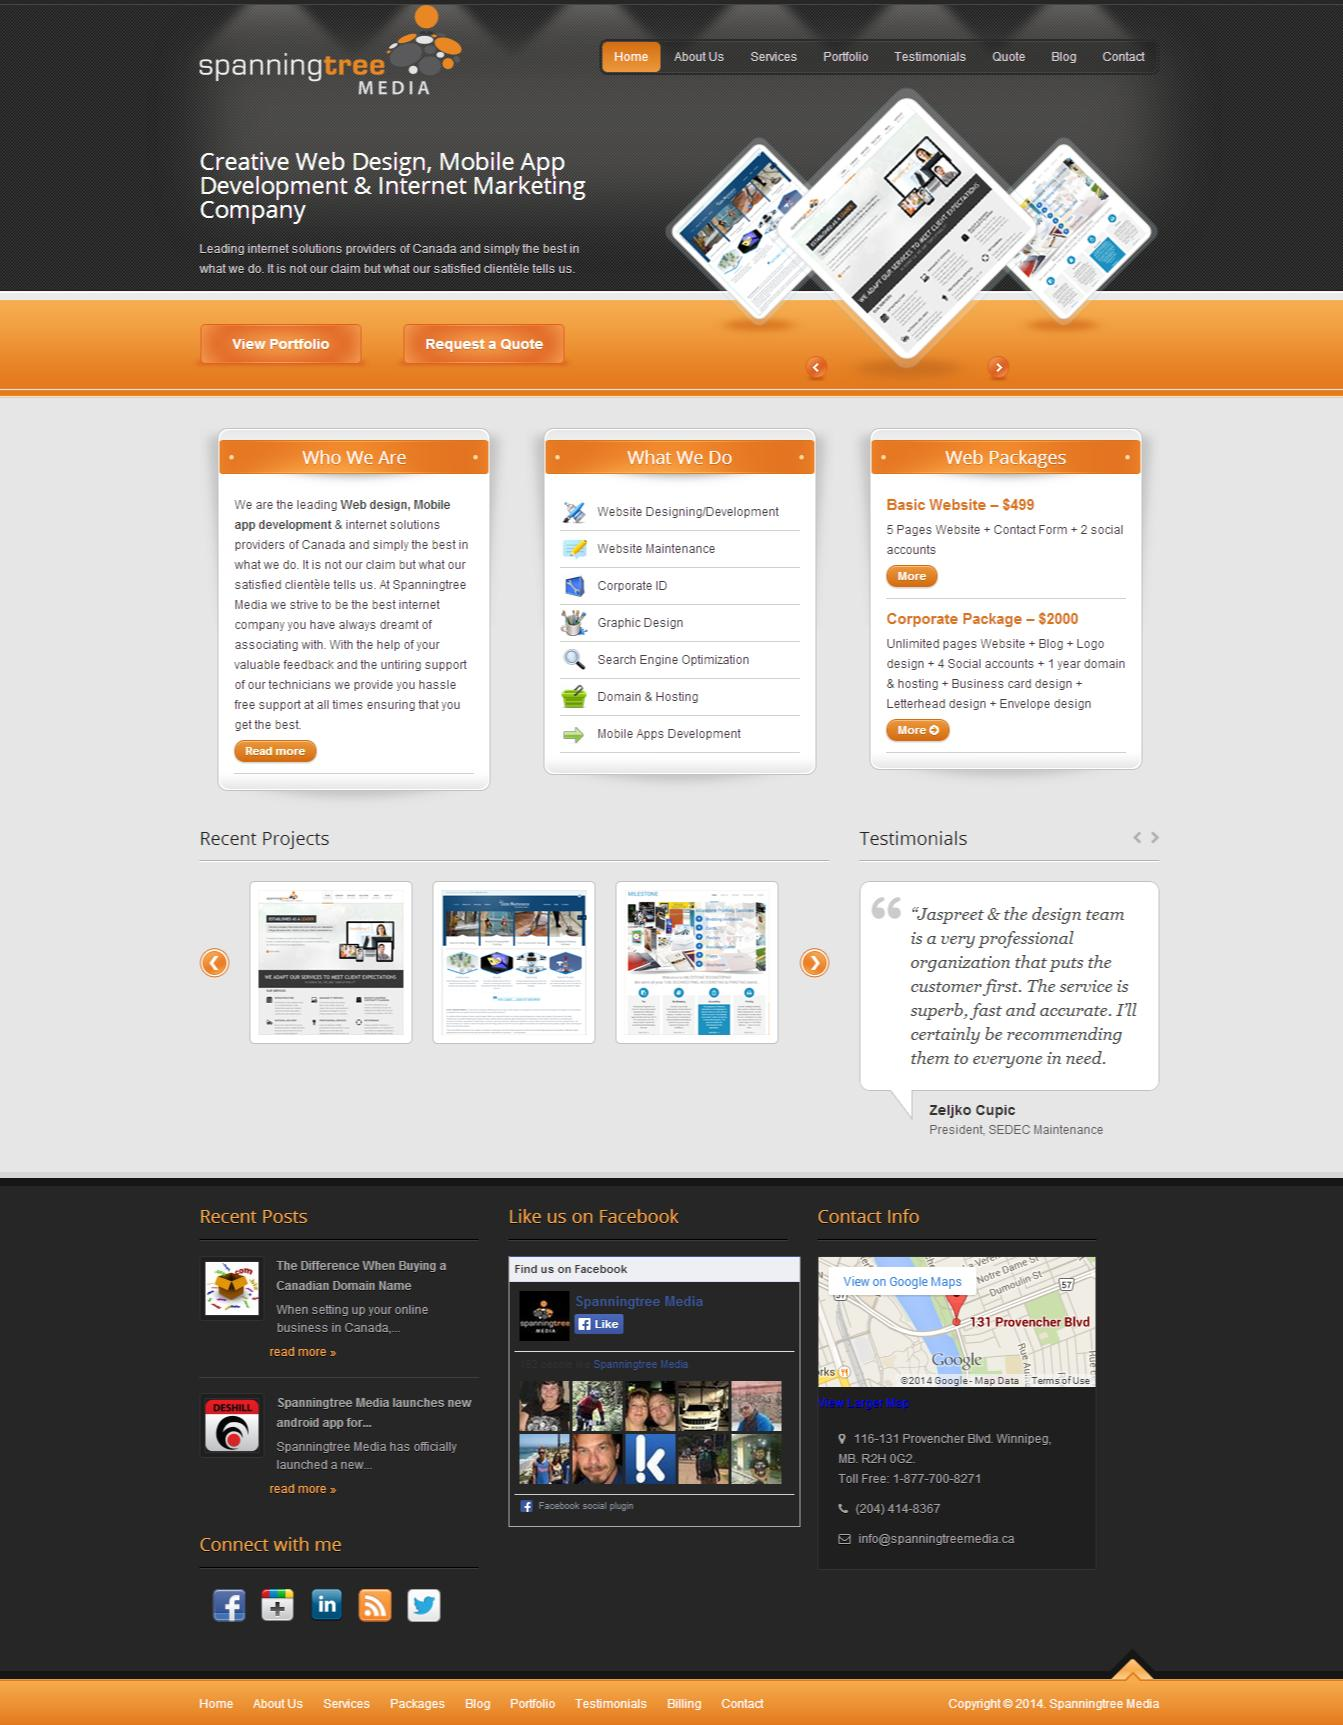 Website Design, Re-design and Development by jassimath - 54187